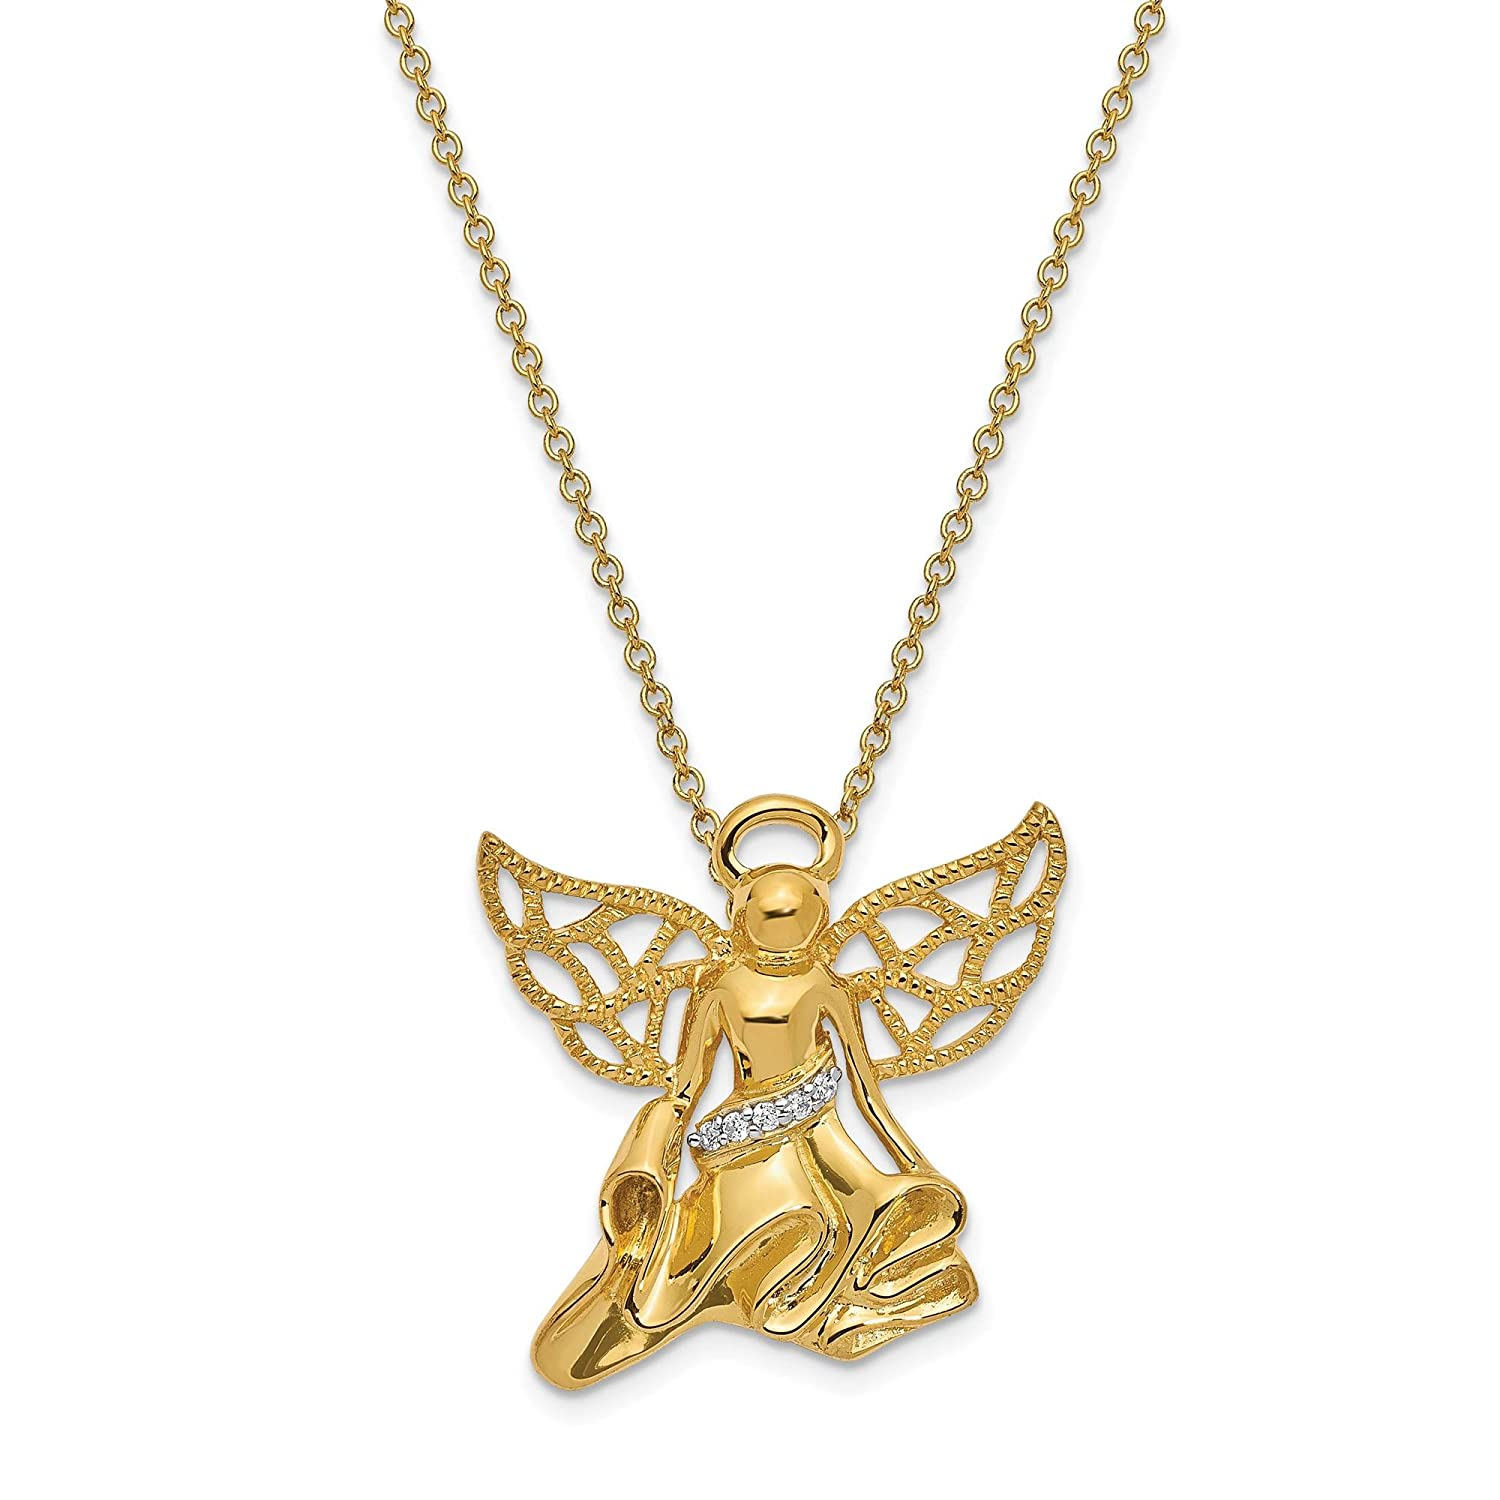 925 Silver w//Gold-tone Polished CZ Angel of Gratitude Pendant Necklace 18 by Sentimental Expressions